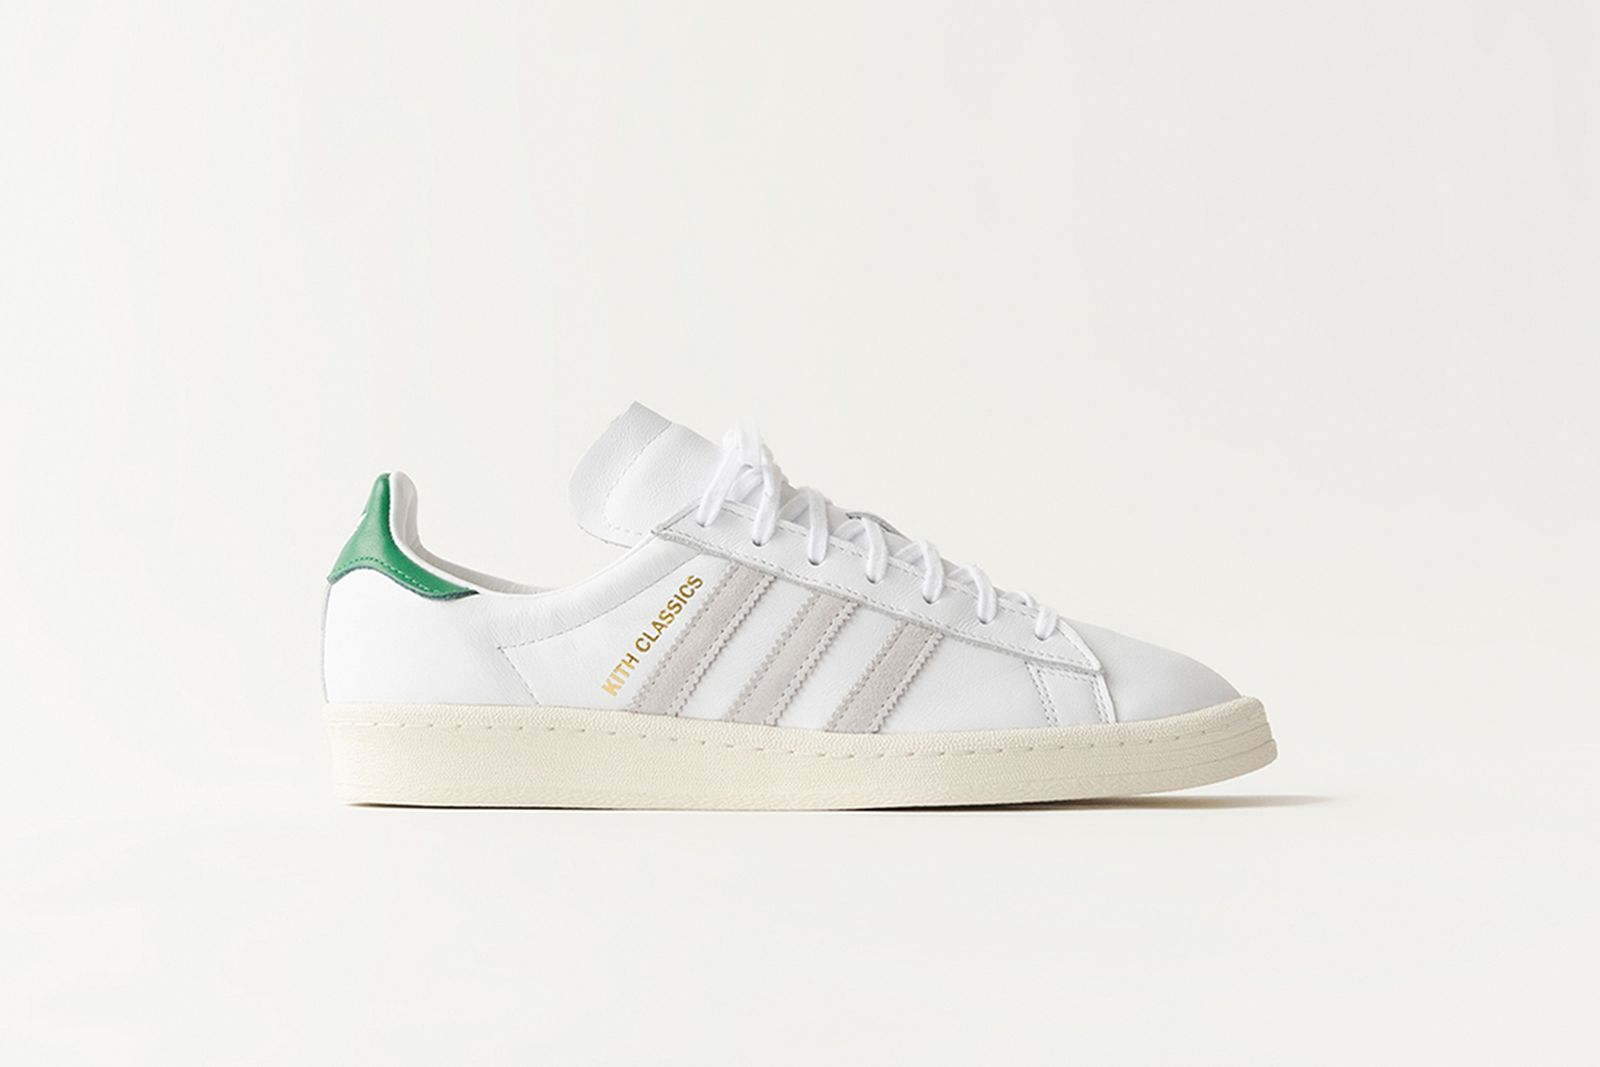 kith-adidas-summer-2021-release-info-08